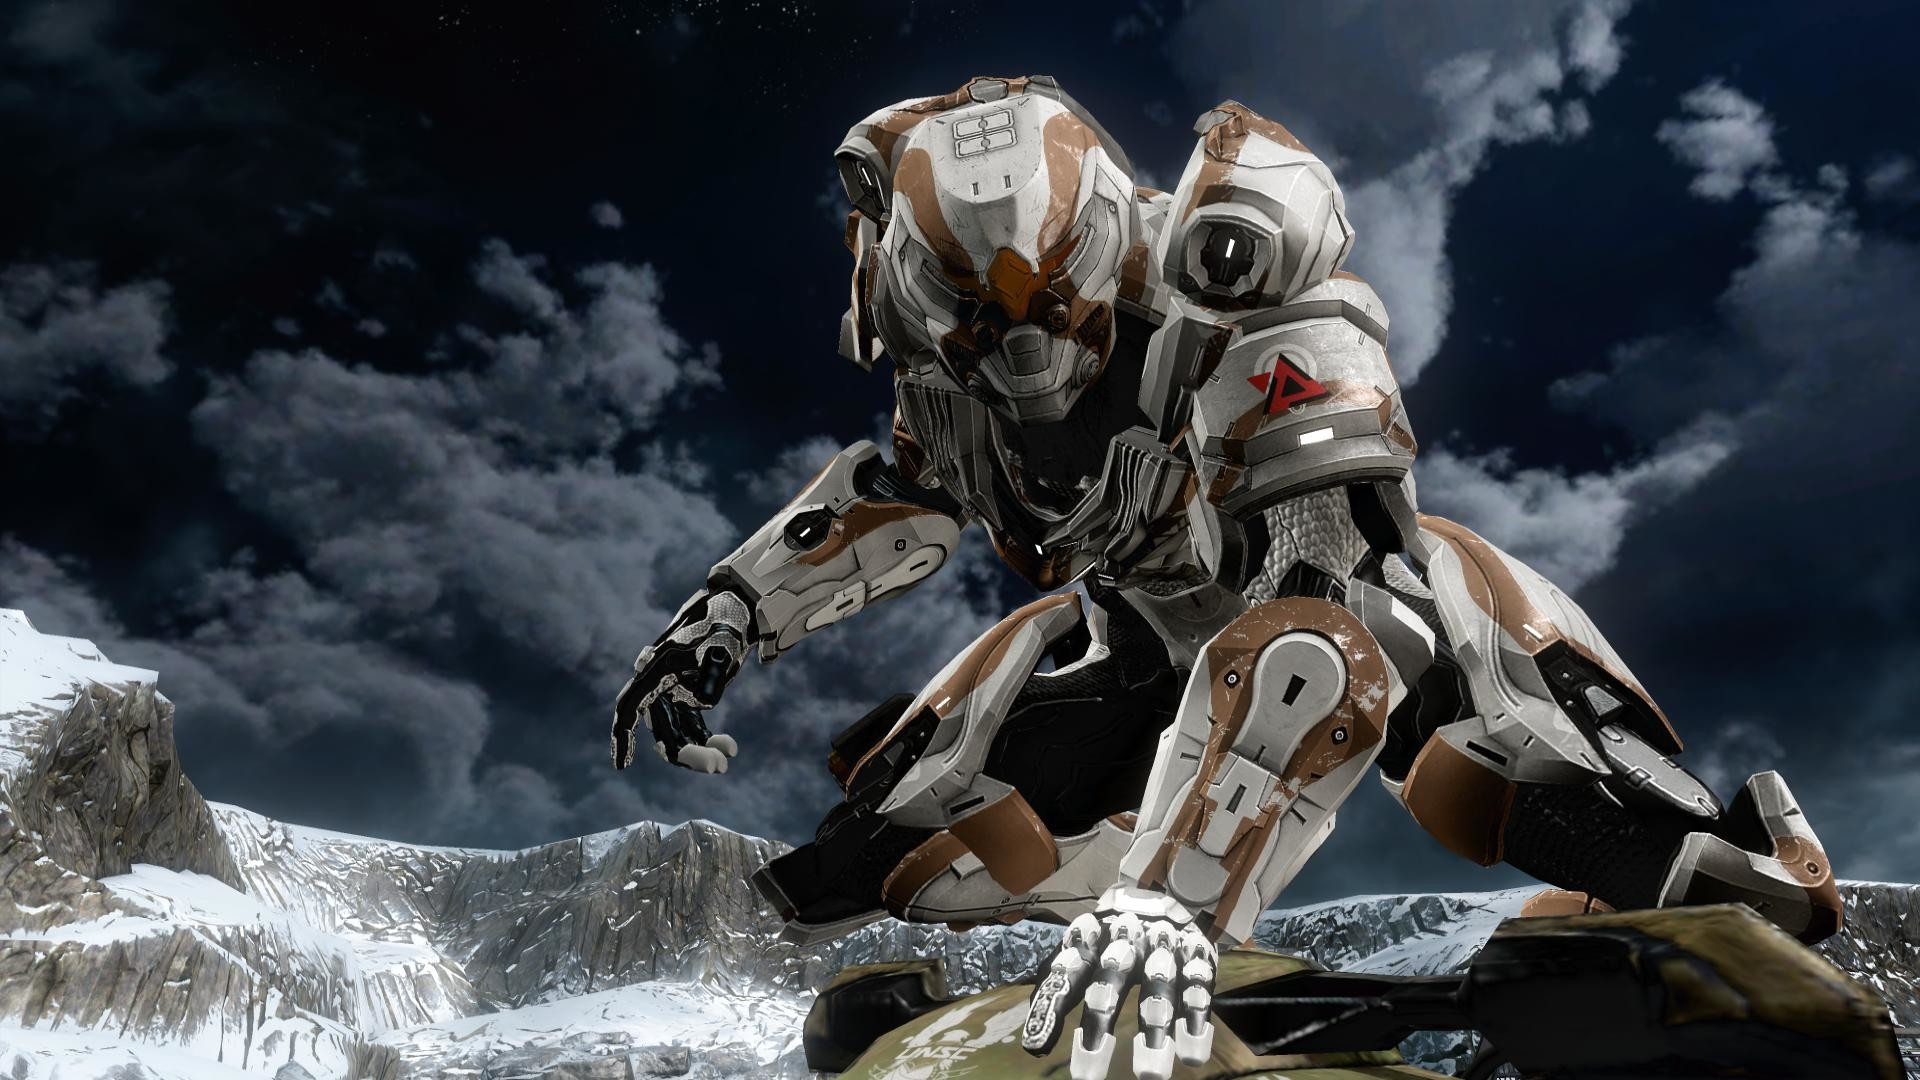 Cool halo 4 wallpapers 64 images - Halo 4 photos ...